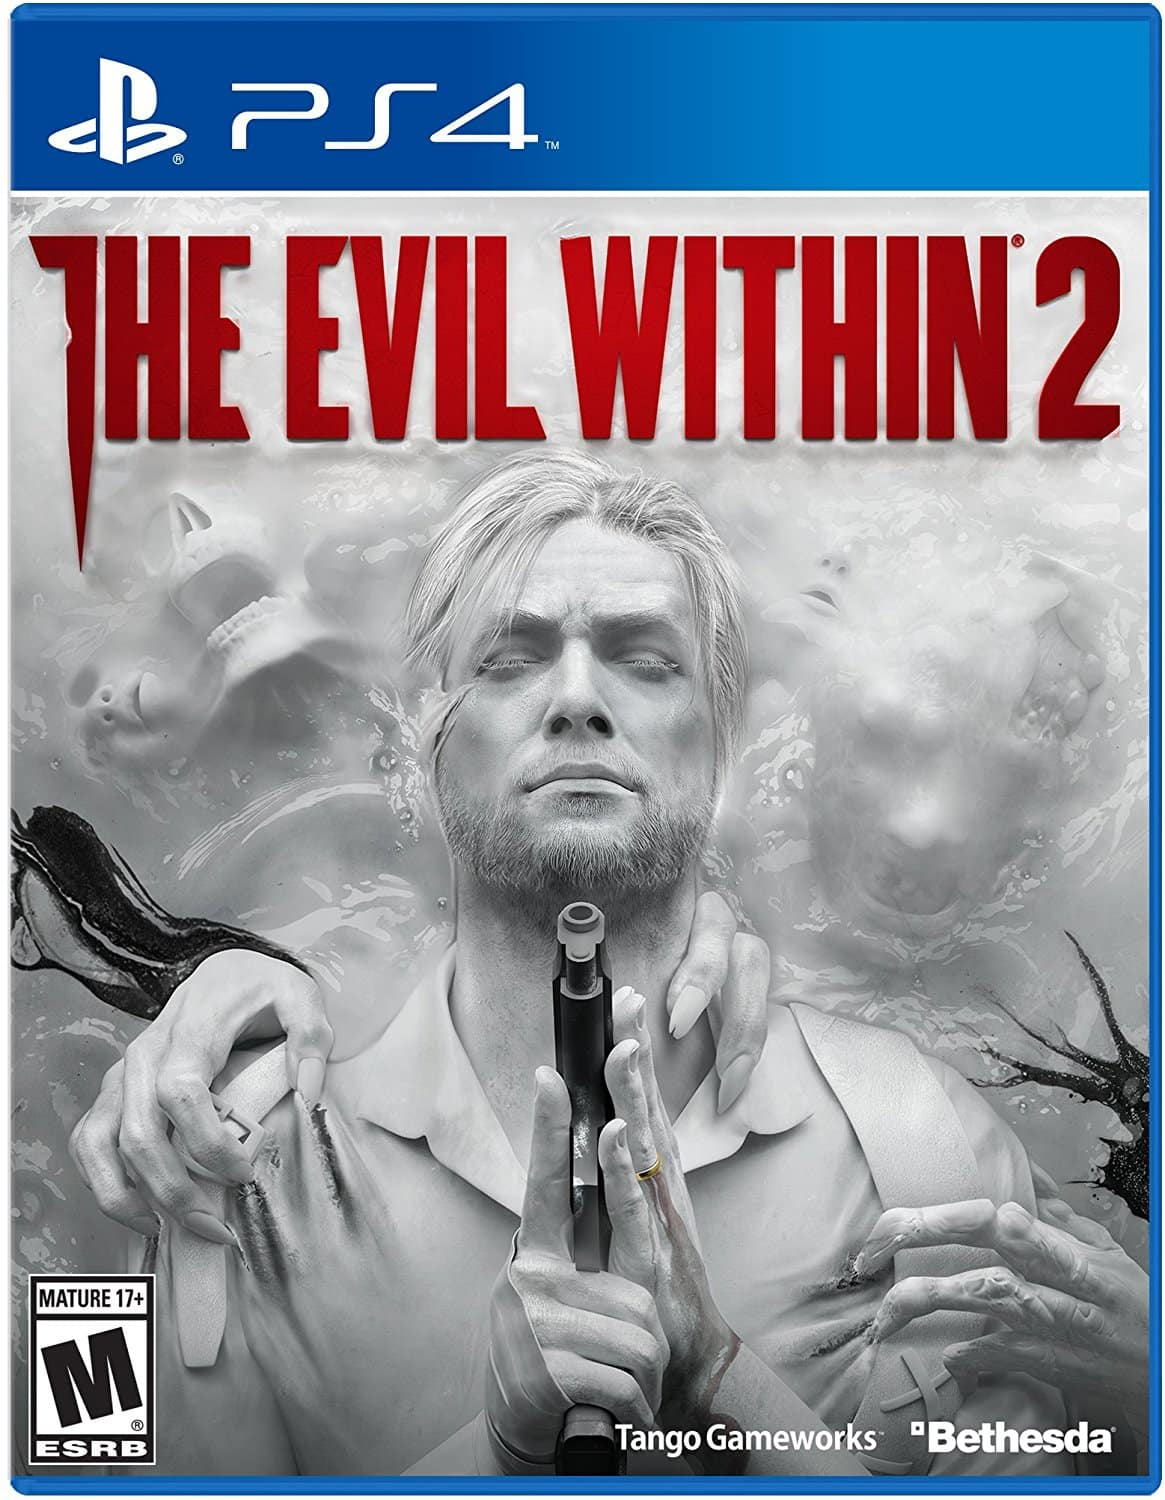 The Evil Within 2 $24.99